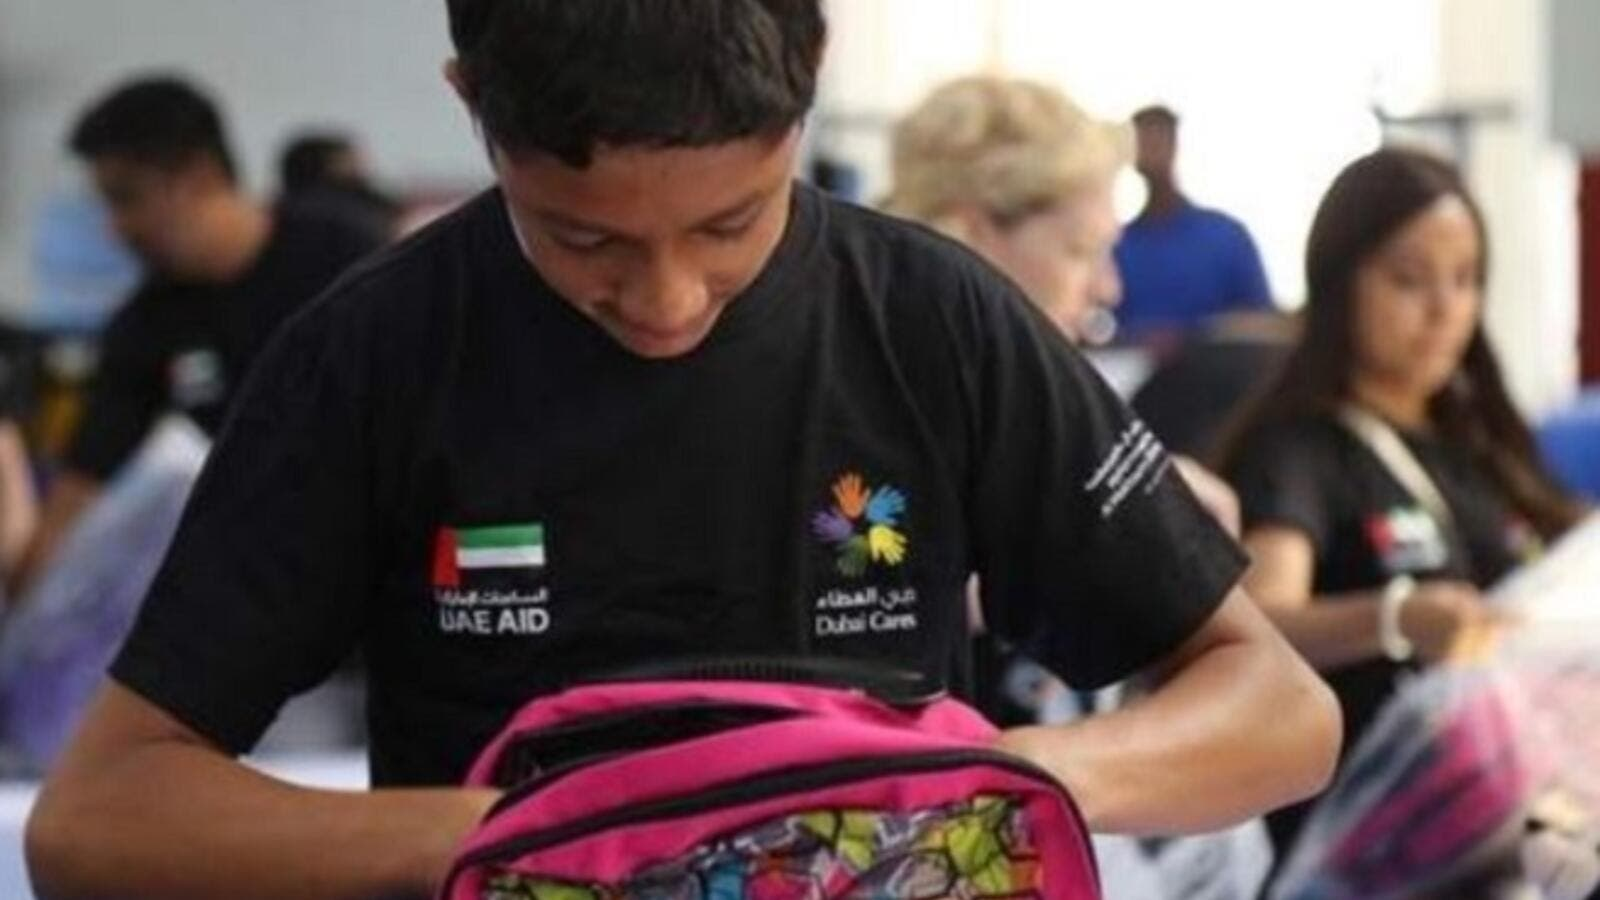 The school kits will be distributed to students from low-income families. (Khaleej Times)